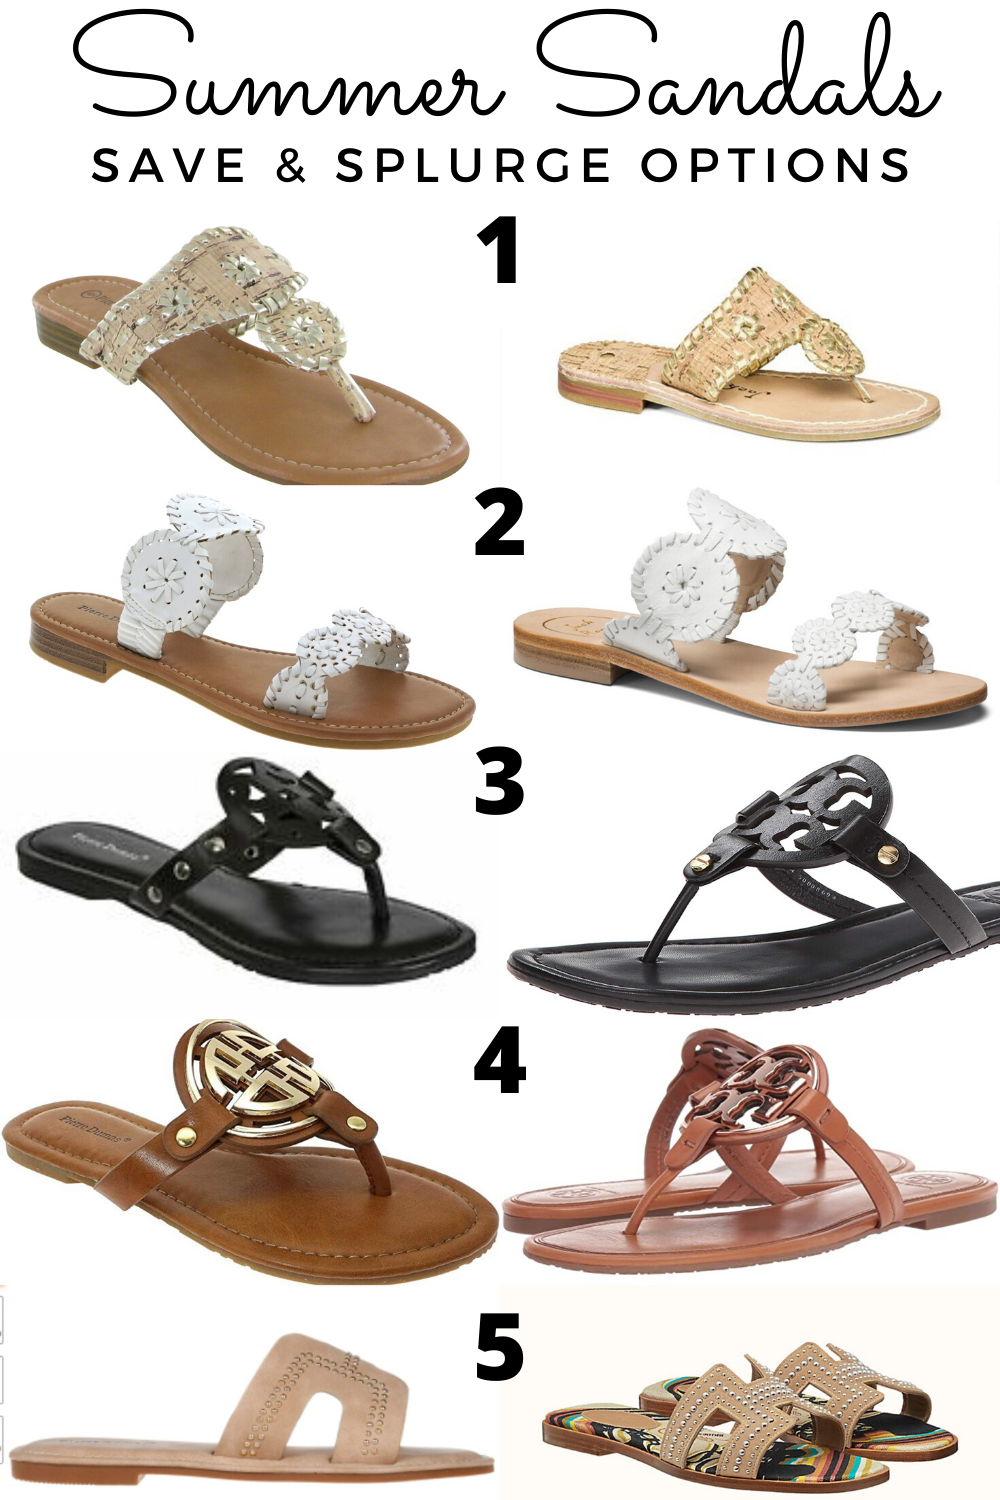 Summer Sandals: Save & Splurge